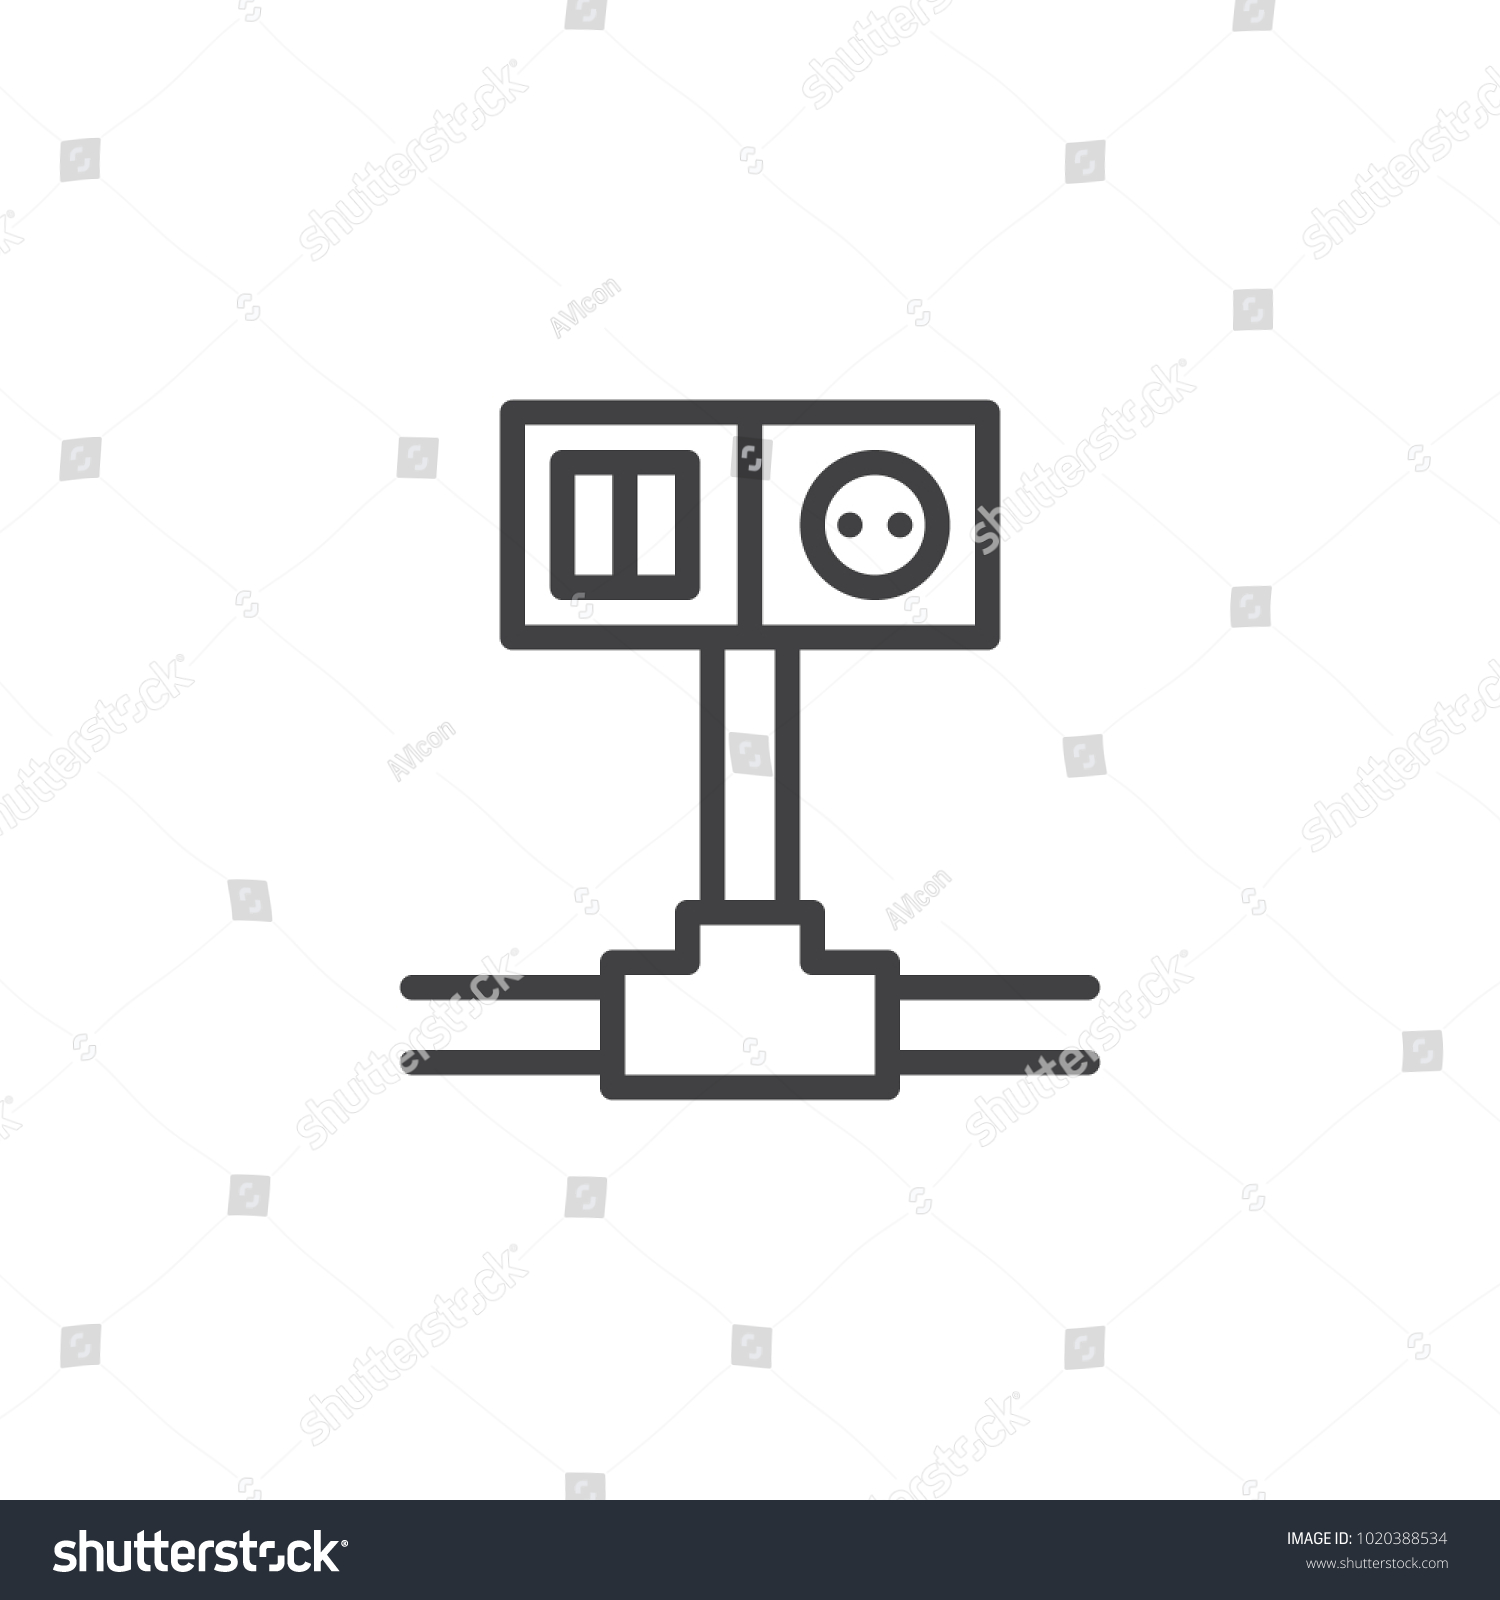 hight resolution of wiring switch and socket line icon outline vector sign linear style pictogram isolated on